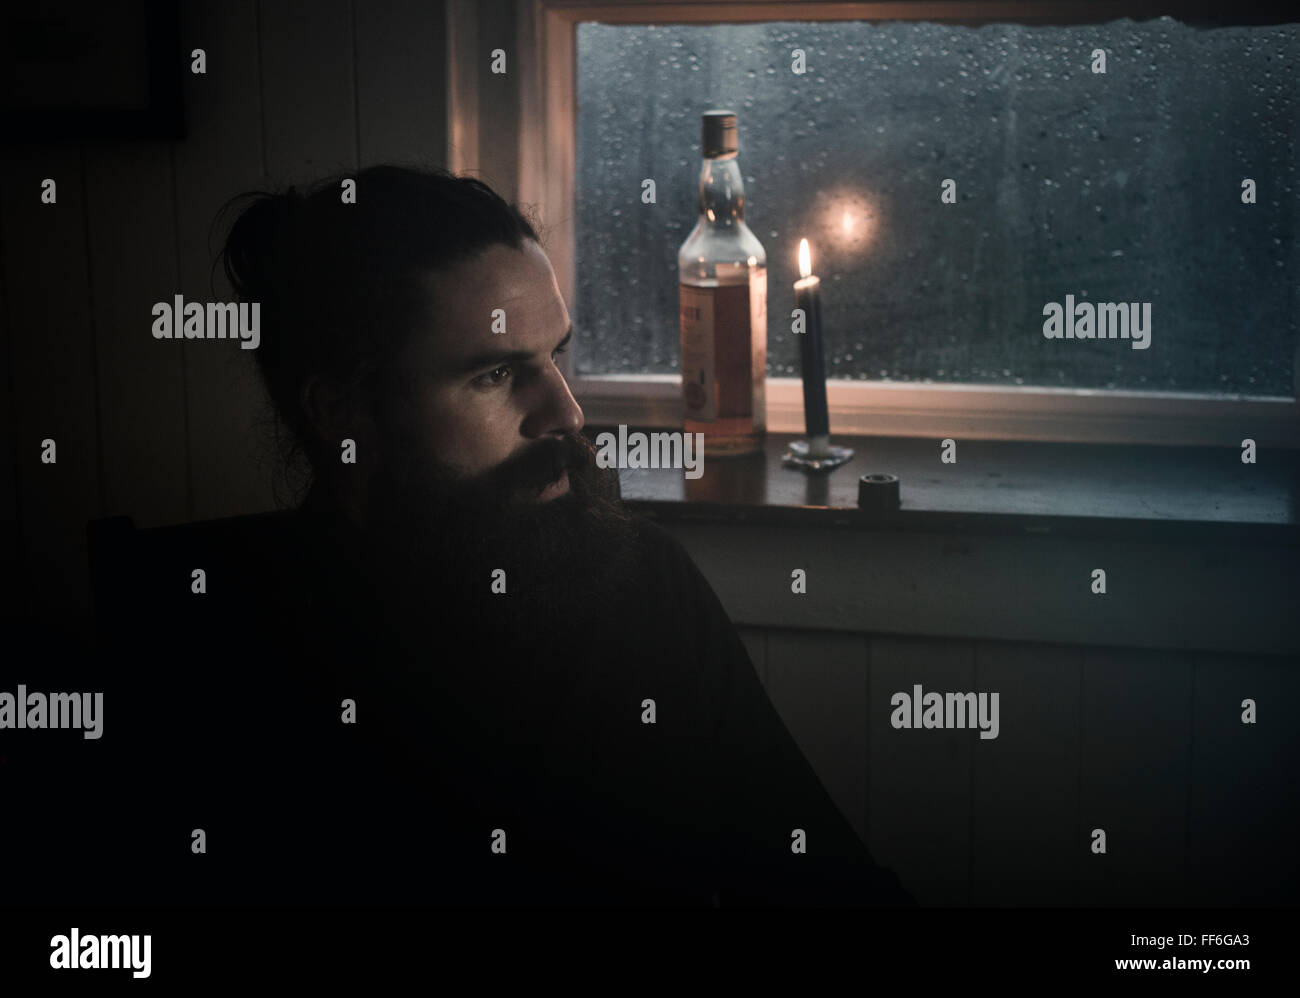 A man sitting in the dark by a window in candlelight drinking from a small glass.  A bottle beside him. - Stock Image